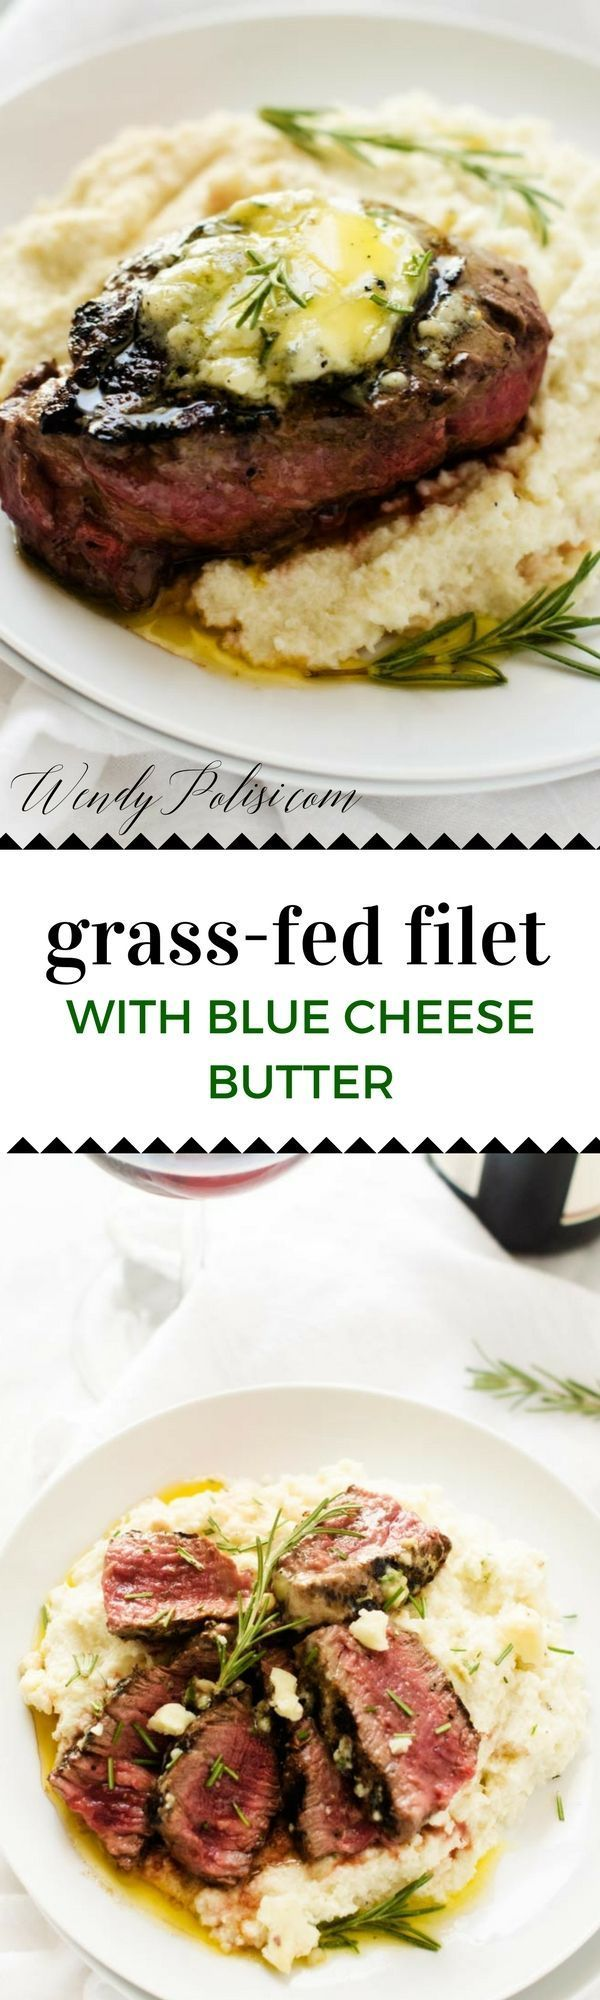 Grass-Fed Filet with Blue Cheese Butter - This Grass-Fed Filet with Blue Cheese Butter is a splurge-worthy steak recipe that will rock your world!  Not only is grass-fed steak better for you, but it also tastes amazing.  Plus, come learn the top five places I've discovered for grass-fed organic beef delivery. - http://WendyPolisi.com #sponsored /greensbury/